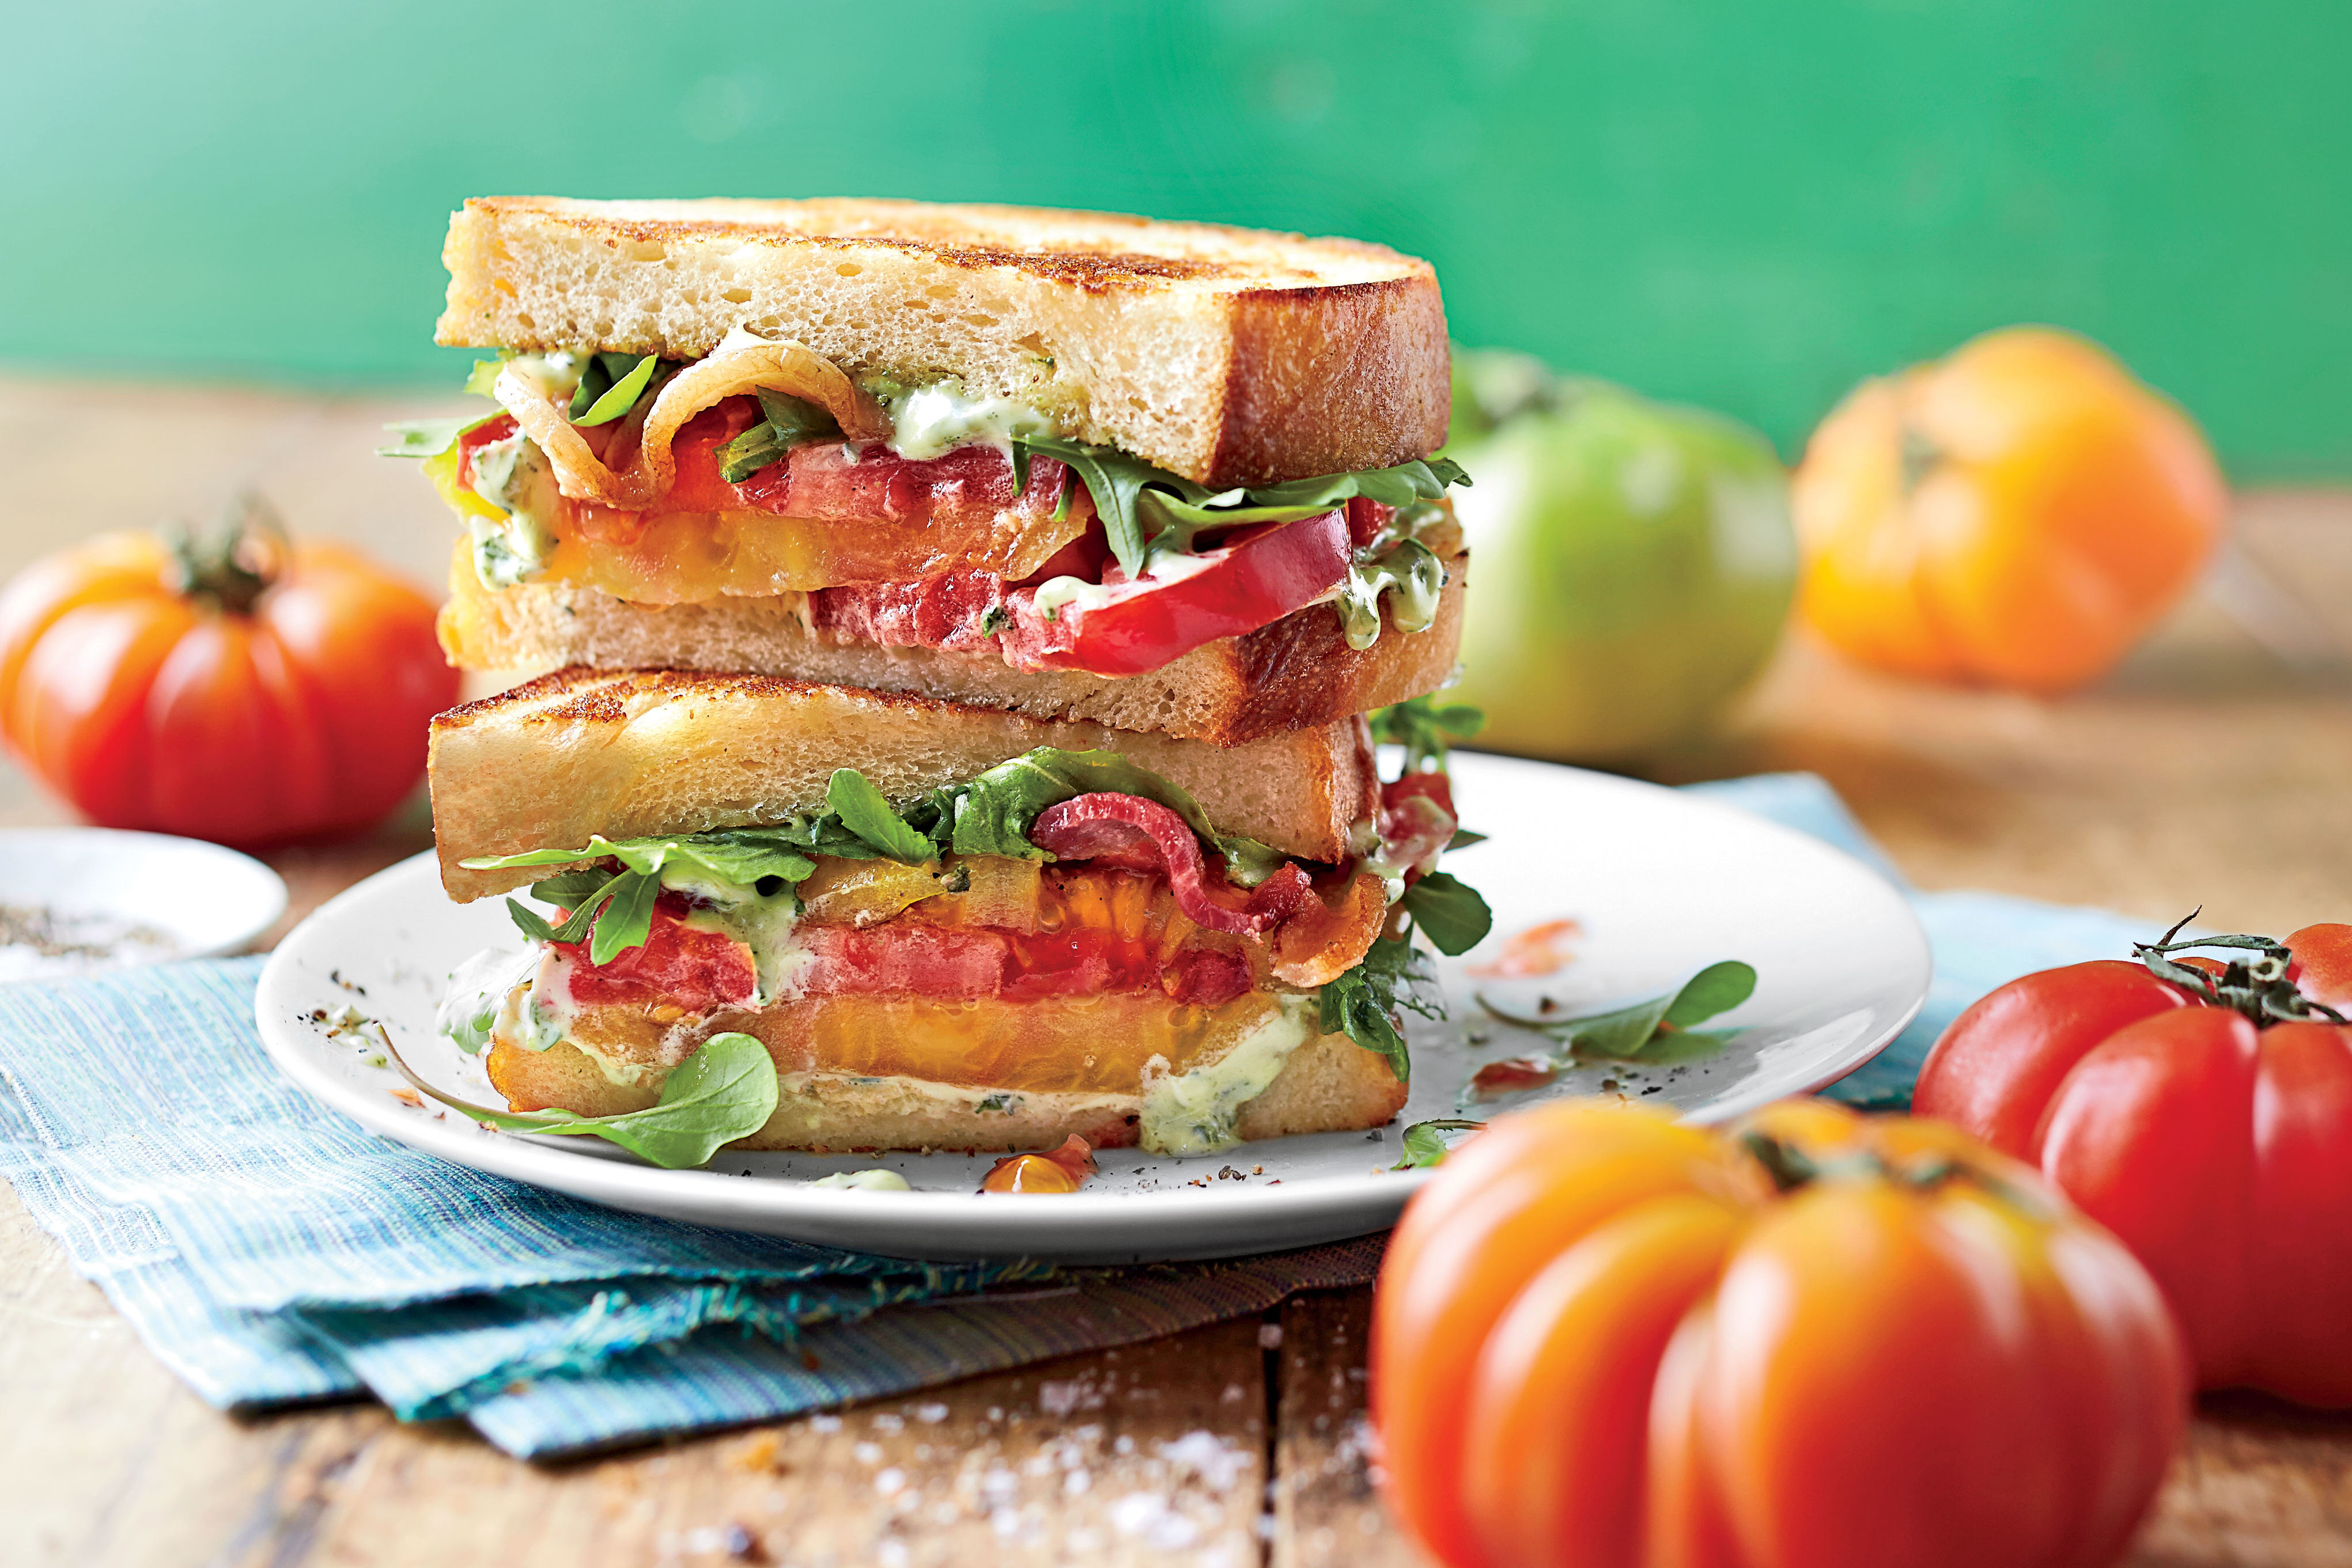 The Biggest Mistake You Can Make With a Tomato Sandwich